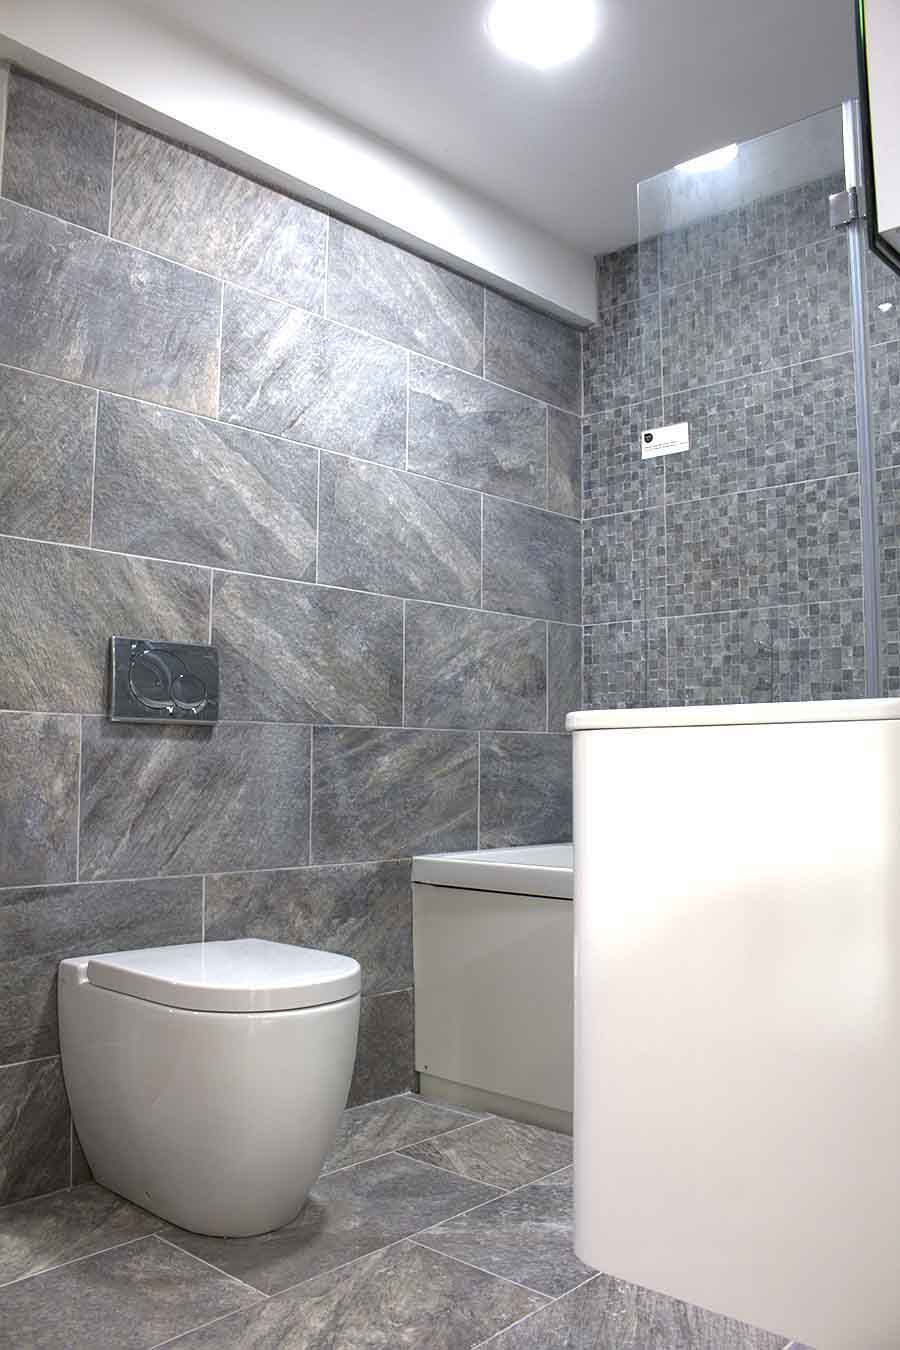 New tile and bathroom displays at uk tiles direct for Bathrooms direct